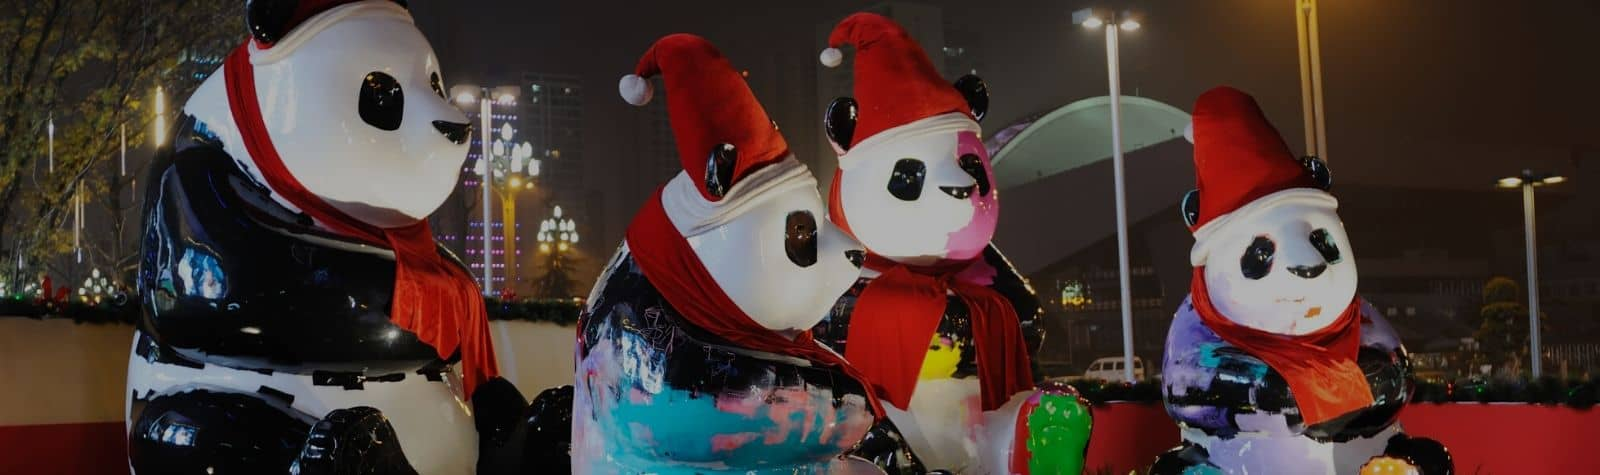 Christmas in China: How is it Celebrated?